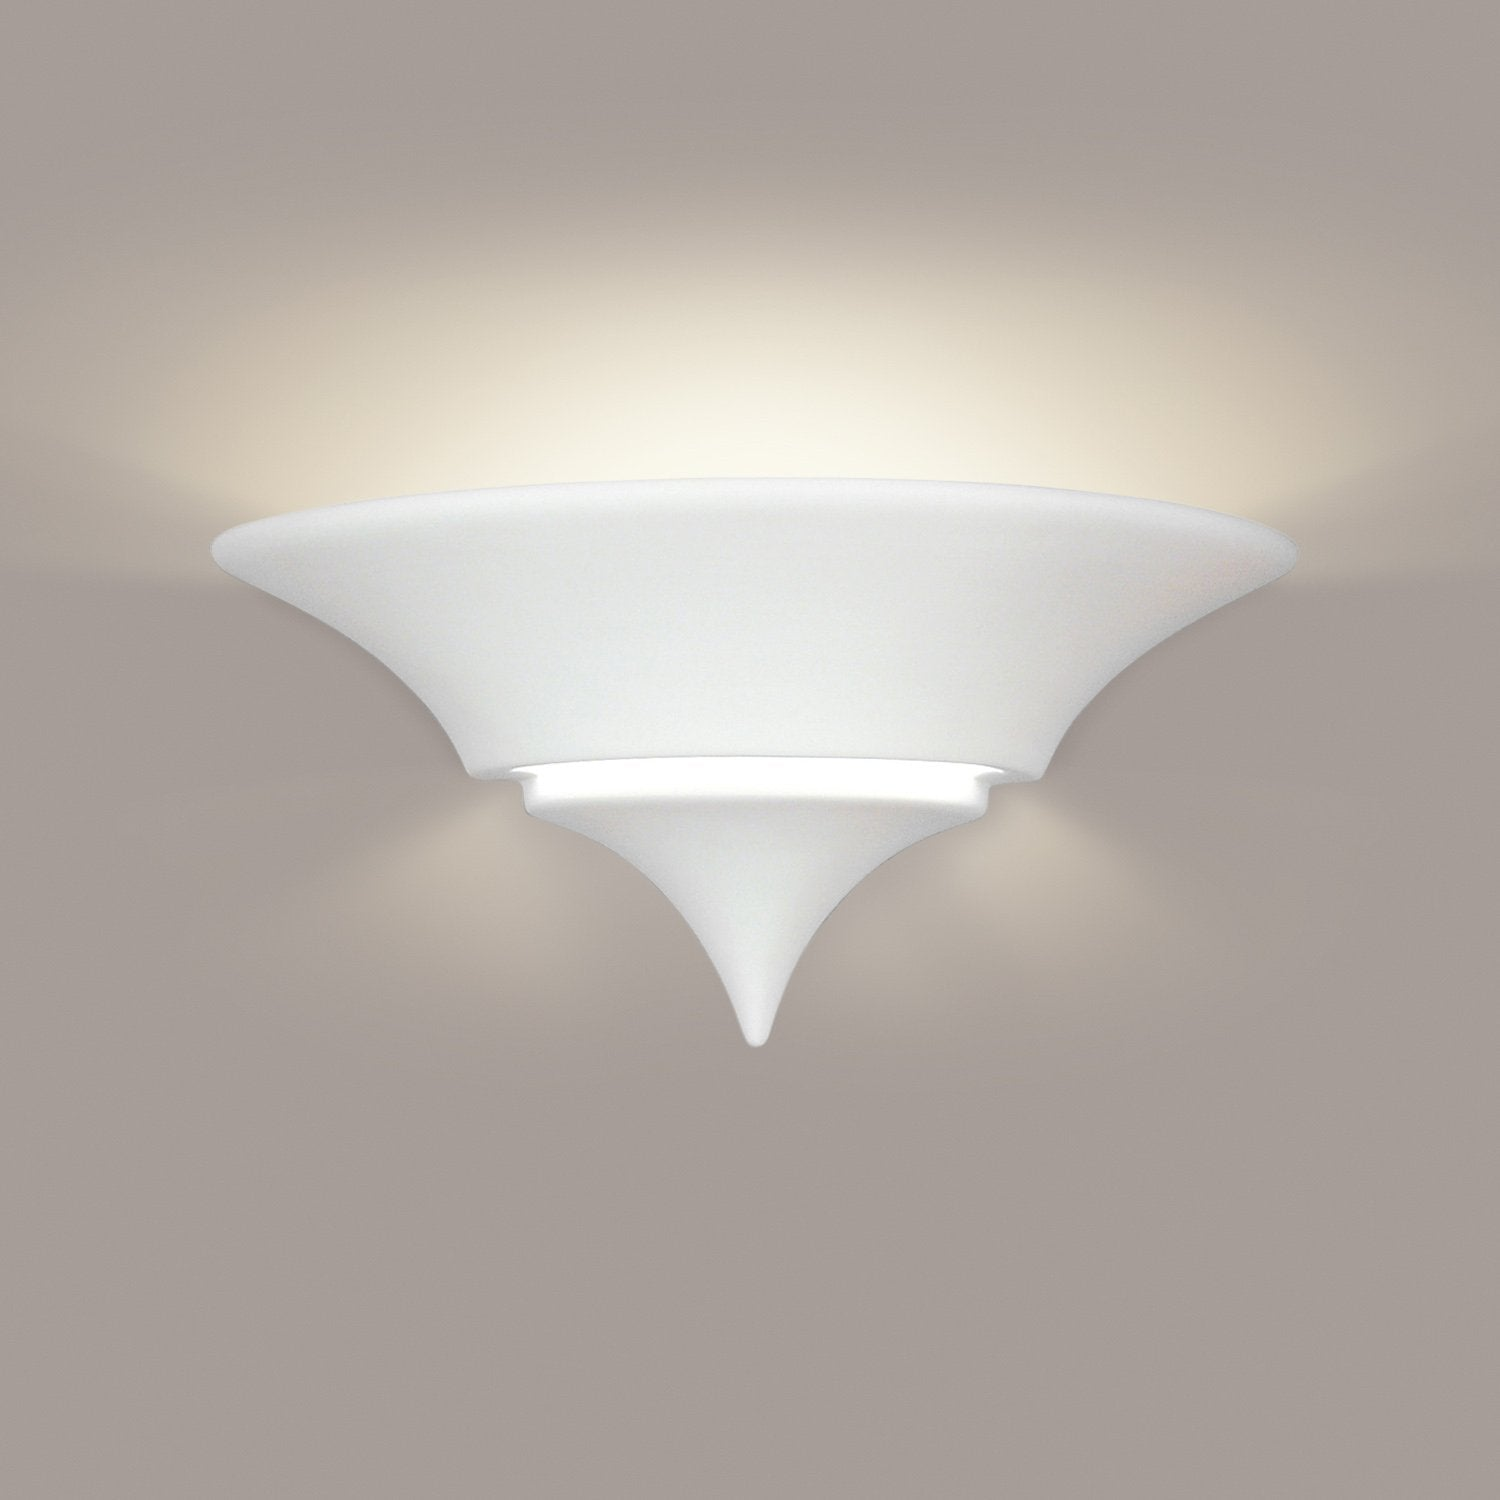 A19 401-A21 Islands of Light Collection Atlantis Dusty Teal Finish Wall Sconce